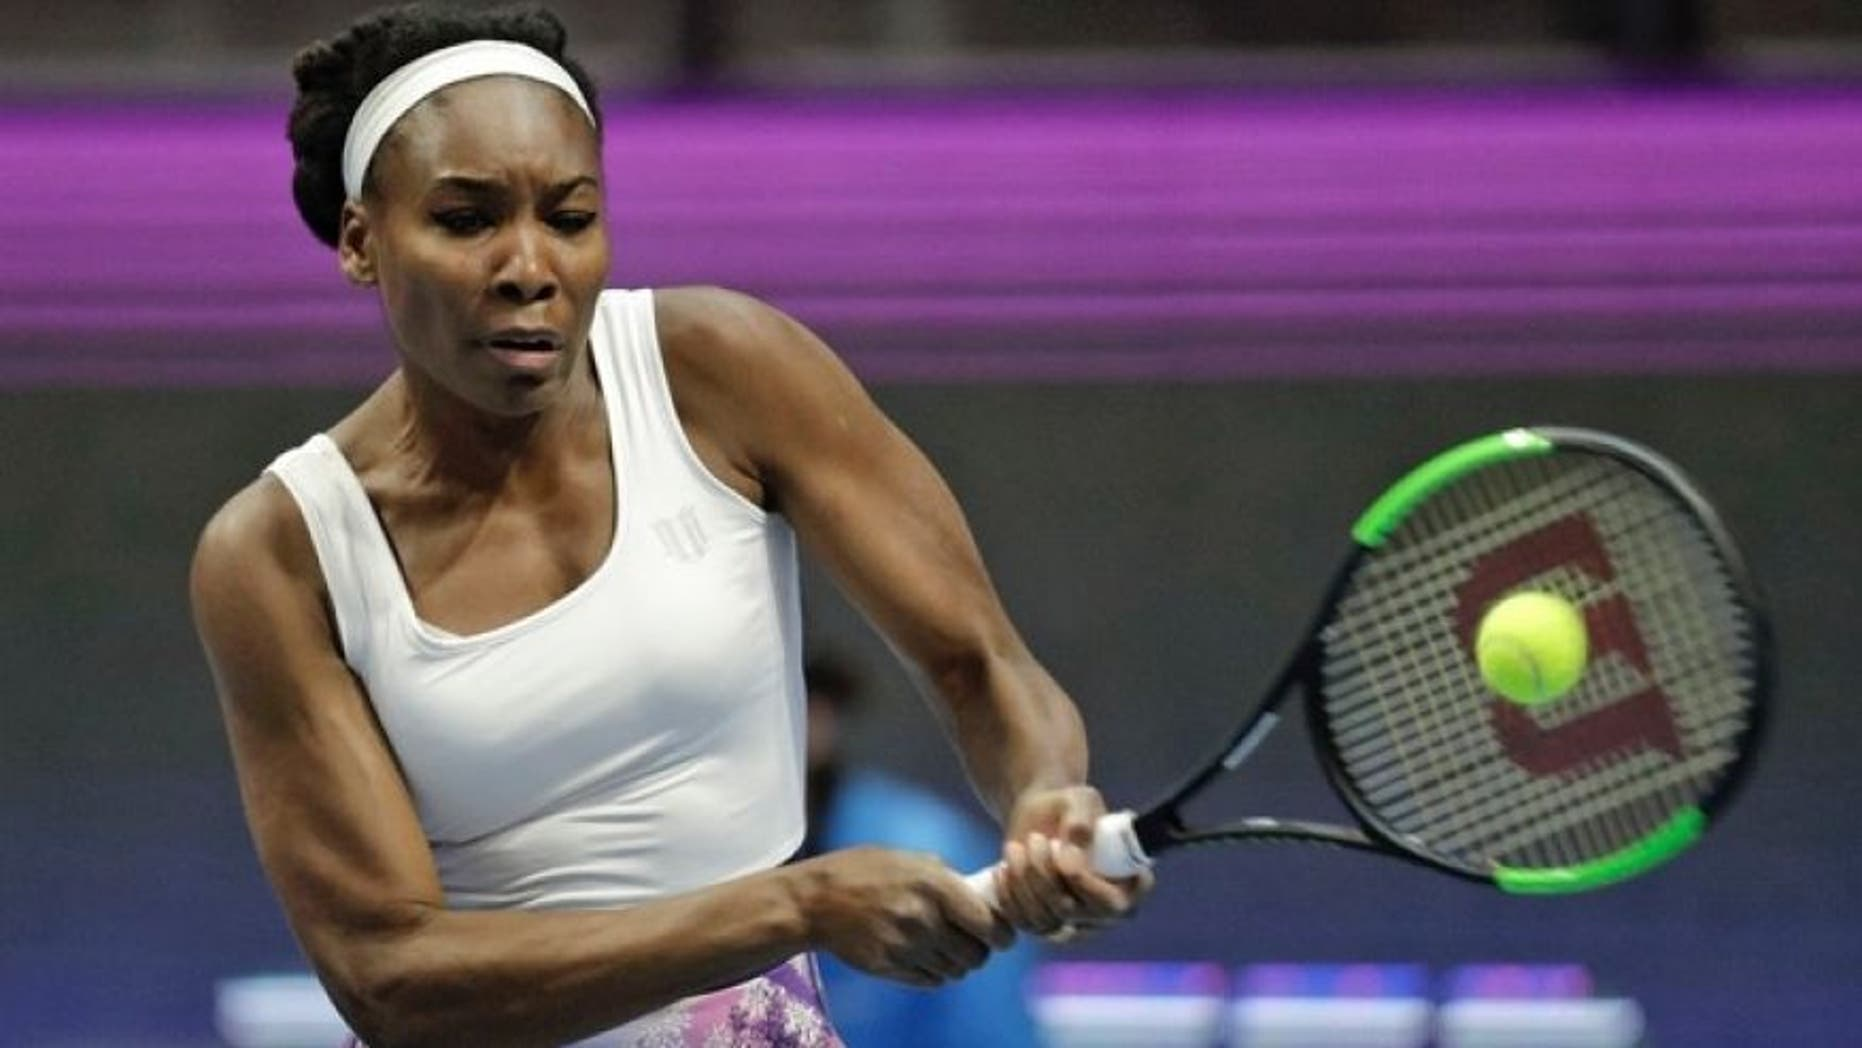 Venus Williams of the U.S. returns the ball to Kristina Mladenovic of France during the St. Petersburg Ladies Trophy-2017 tennis tournament match in St. Petersburg, Russia, Thursday, Feb. 2, 2017.